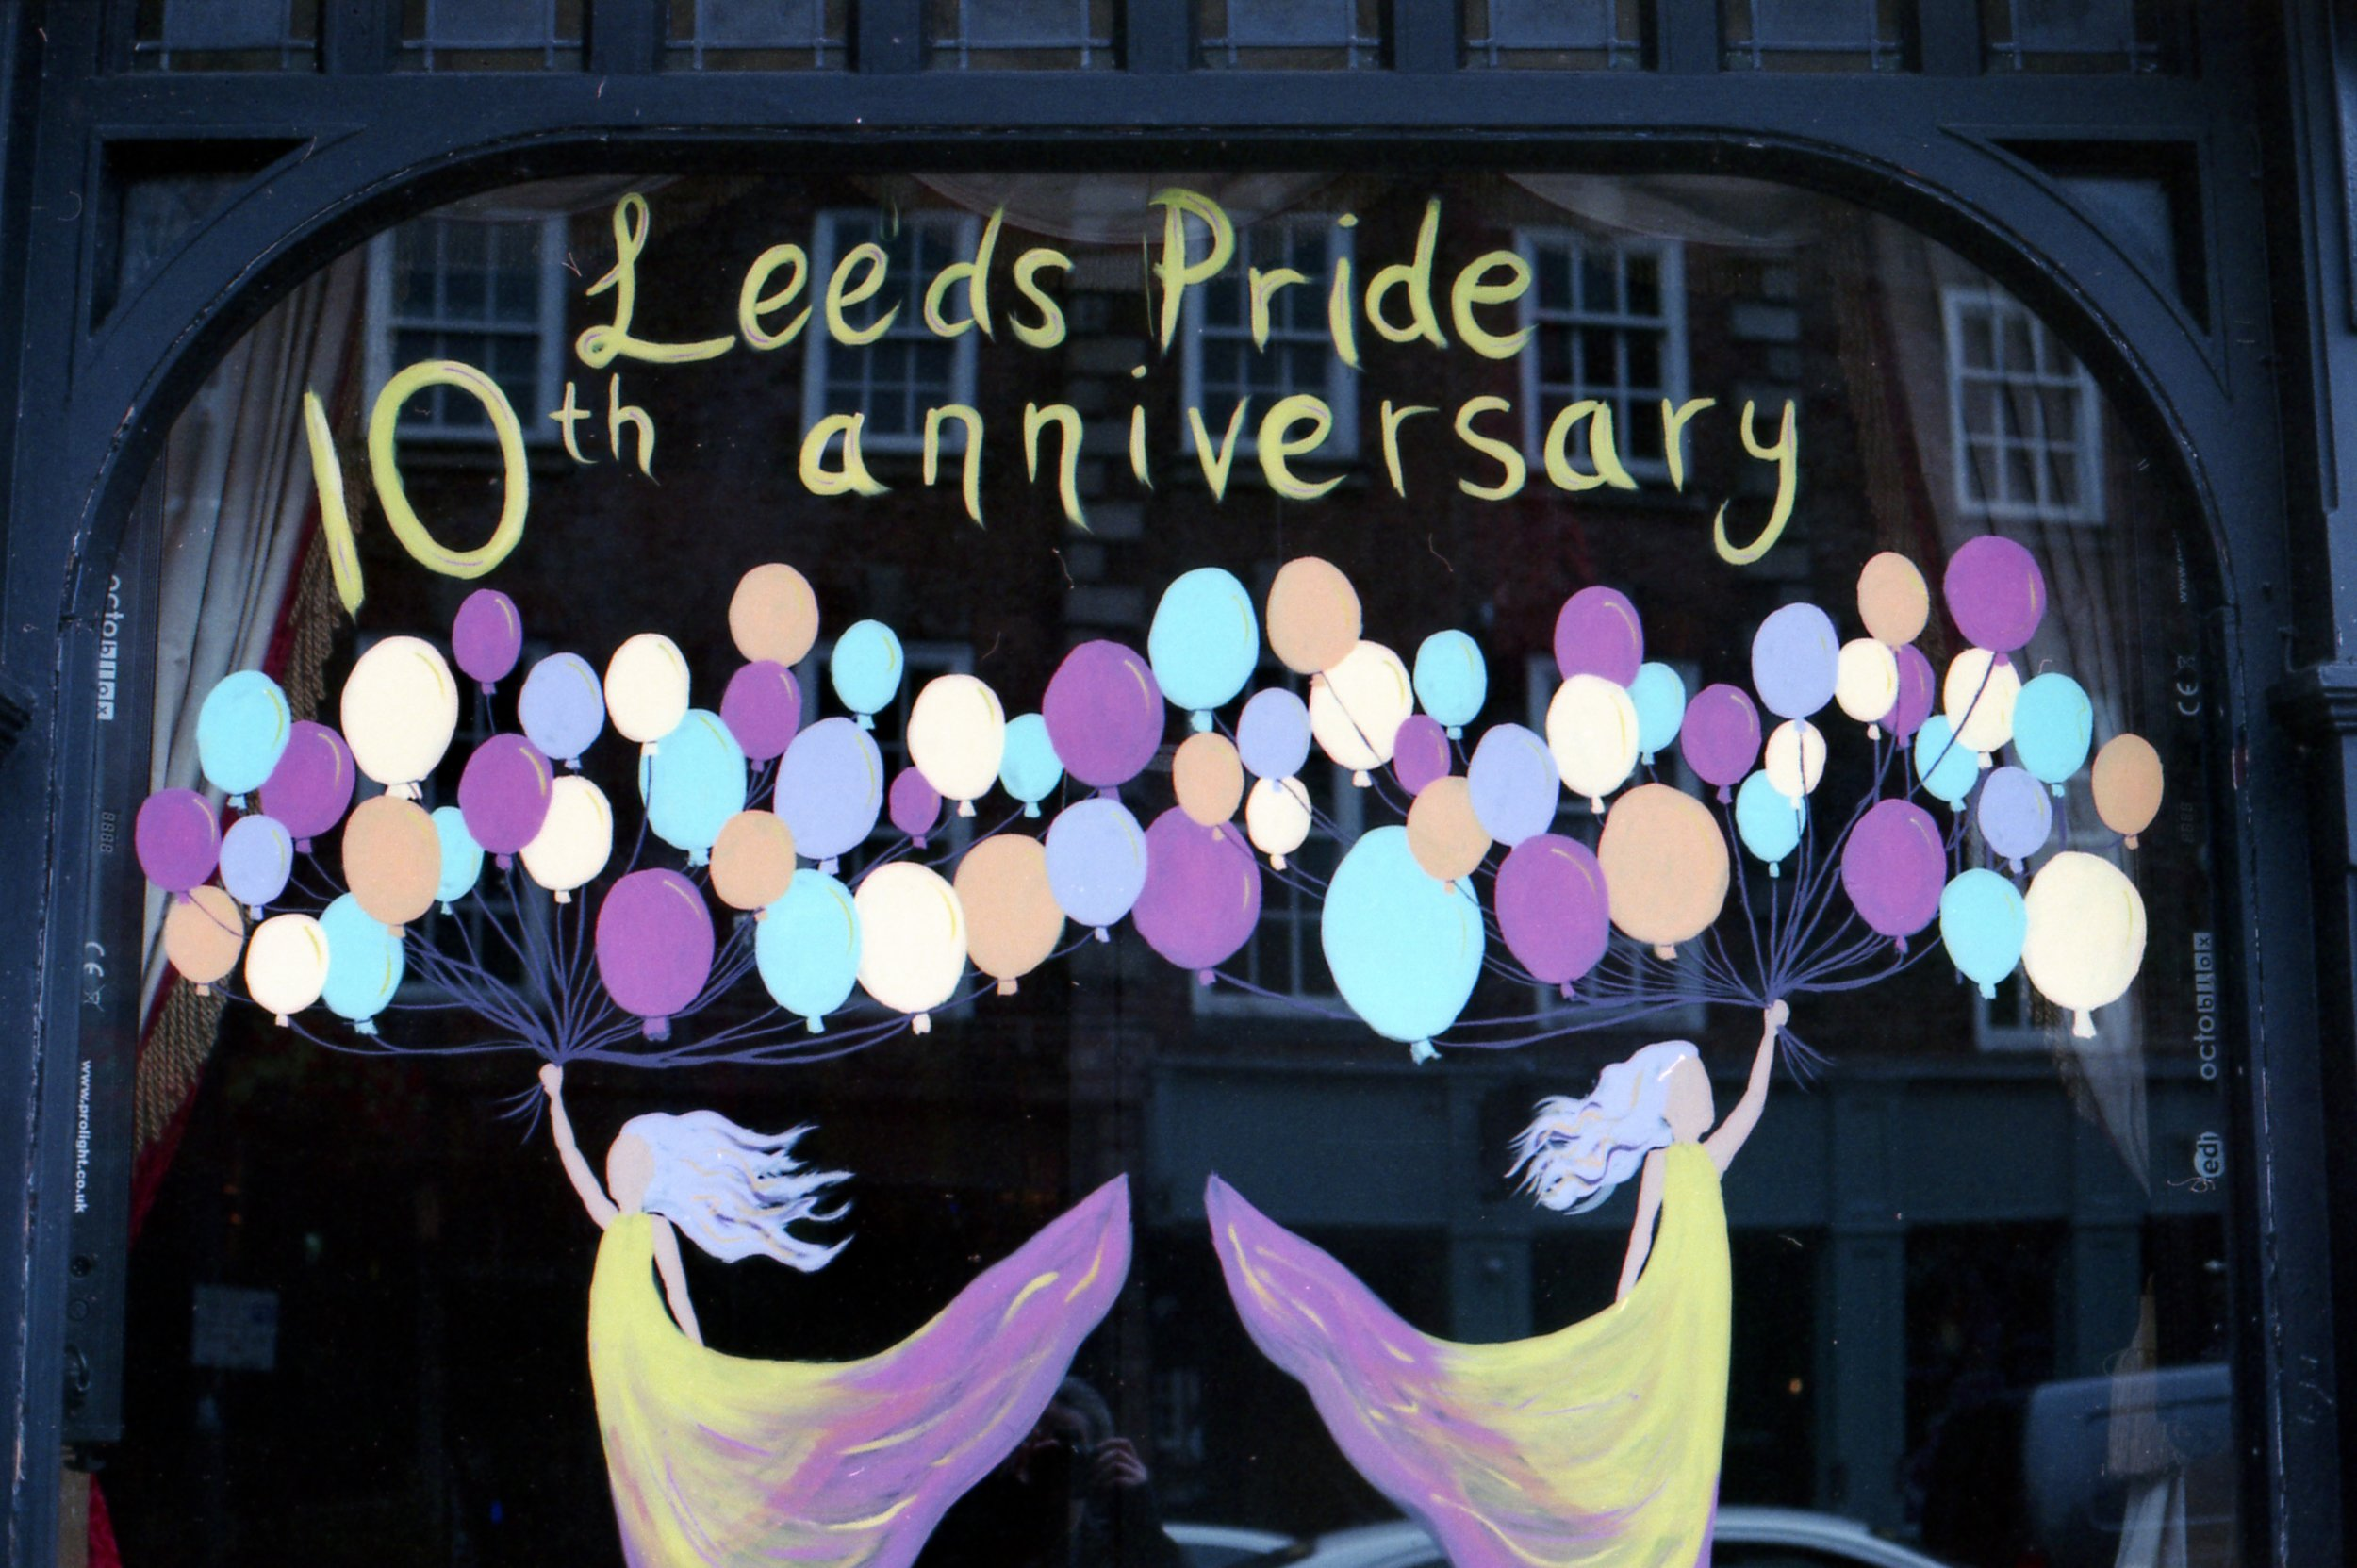 210/366 - I love how colourful everything gets in Leeds when its Pride, the windows this year were especially awesome!